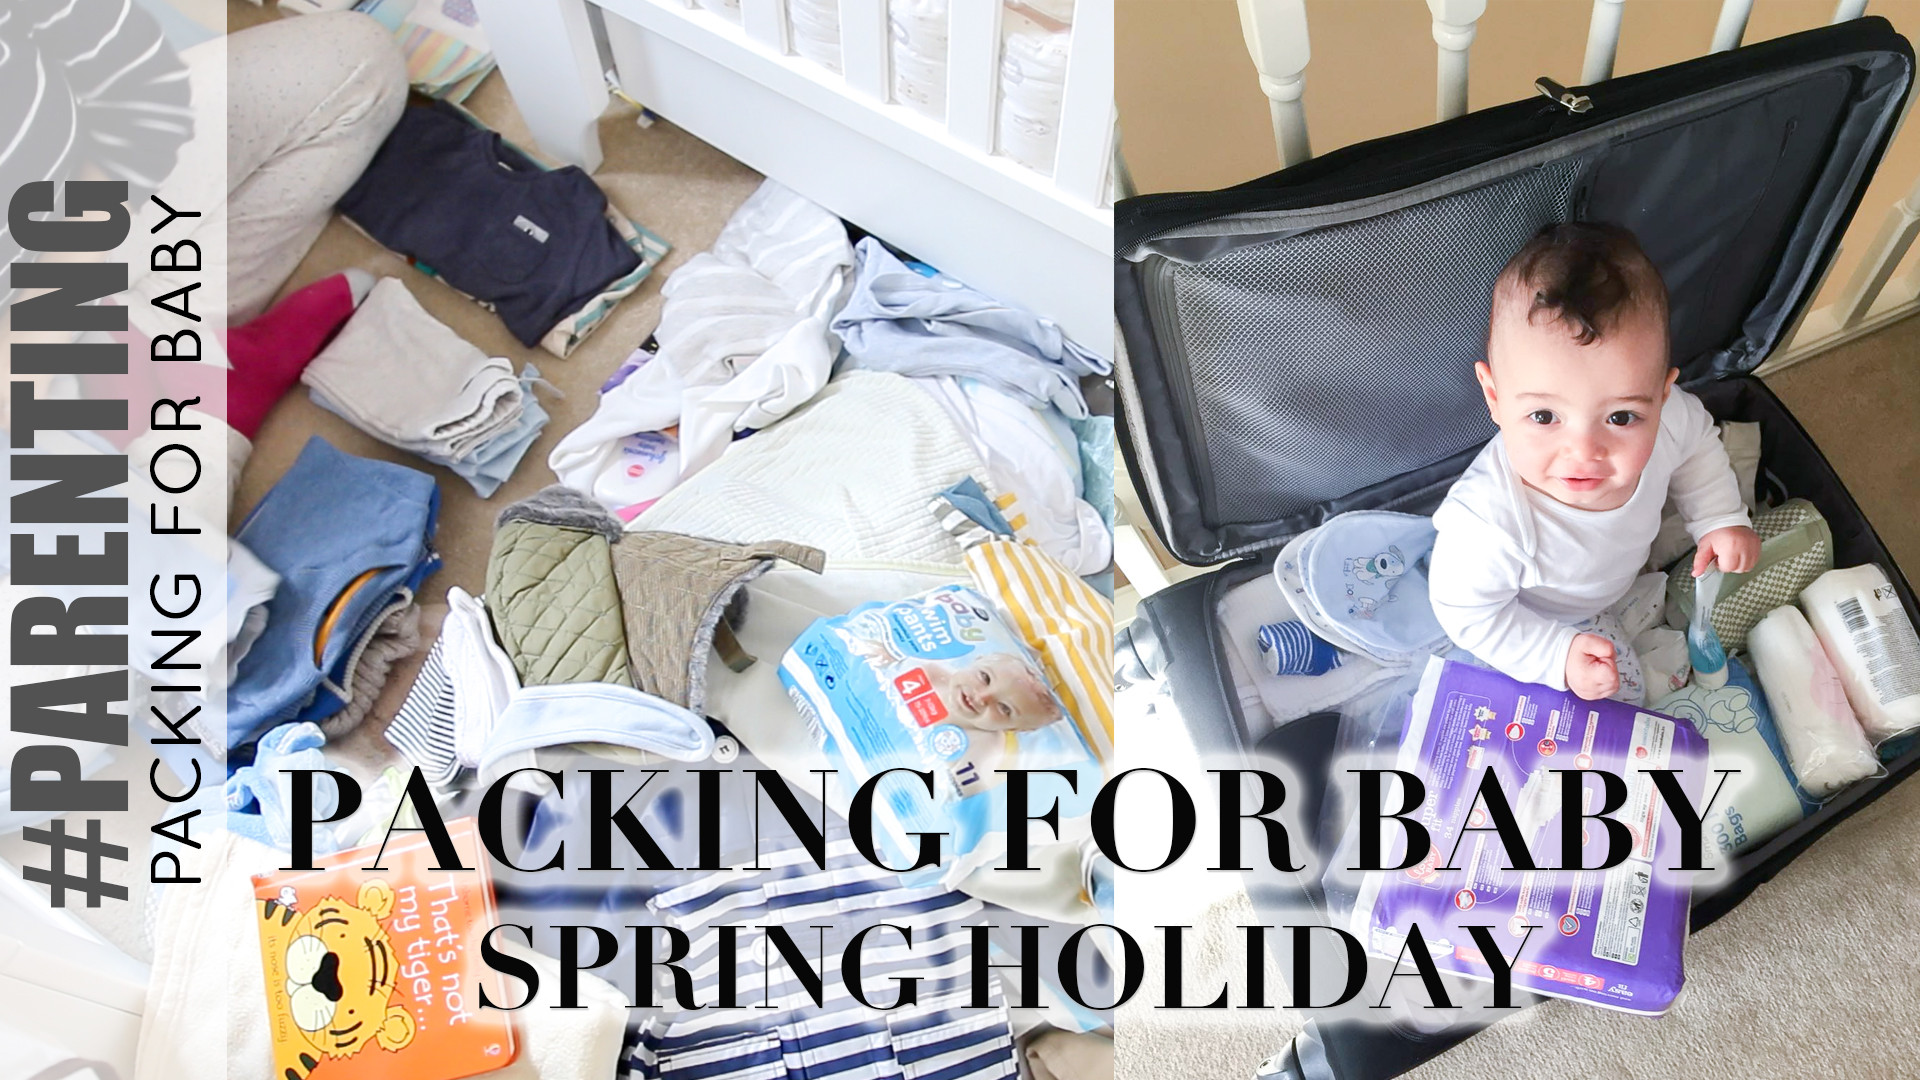 Packing for Baby: Spring Holiday (FULL PACKING LIST) - www.ysislorenna.com